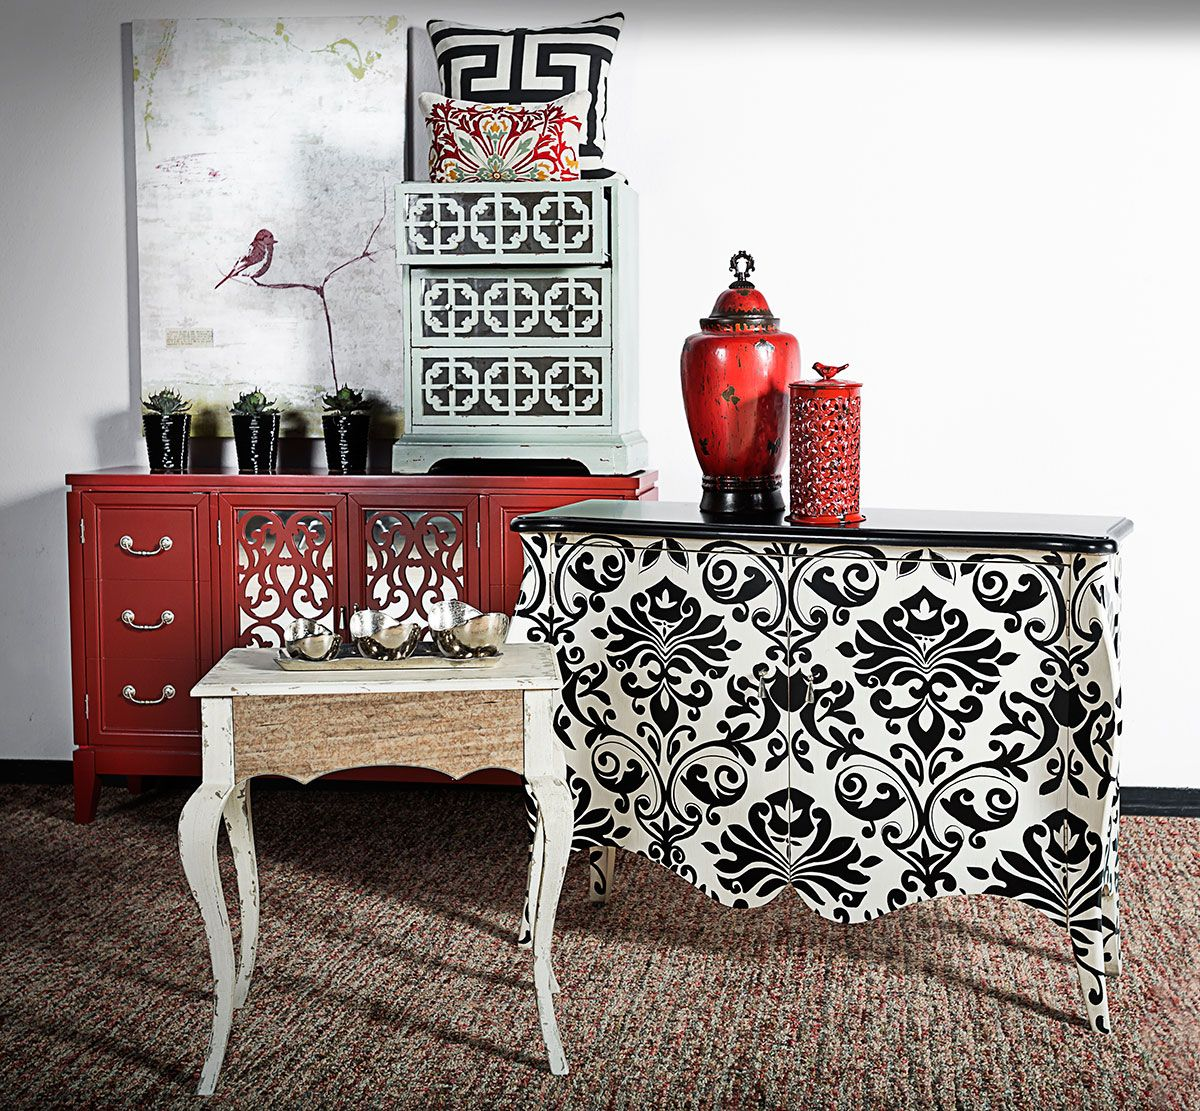 Dare to get dramatic with décor in 2014, because this year it's all about being bold, going glam and energizing your space with an adventurous amalgamation of styles, patterns, colors and shapes. This fun and fearless bunch is ready for the new year…are you?